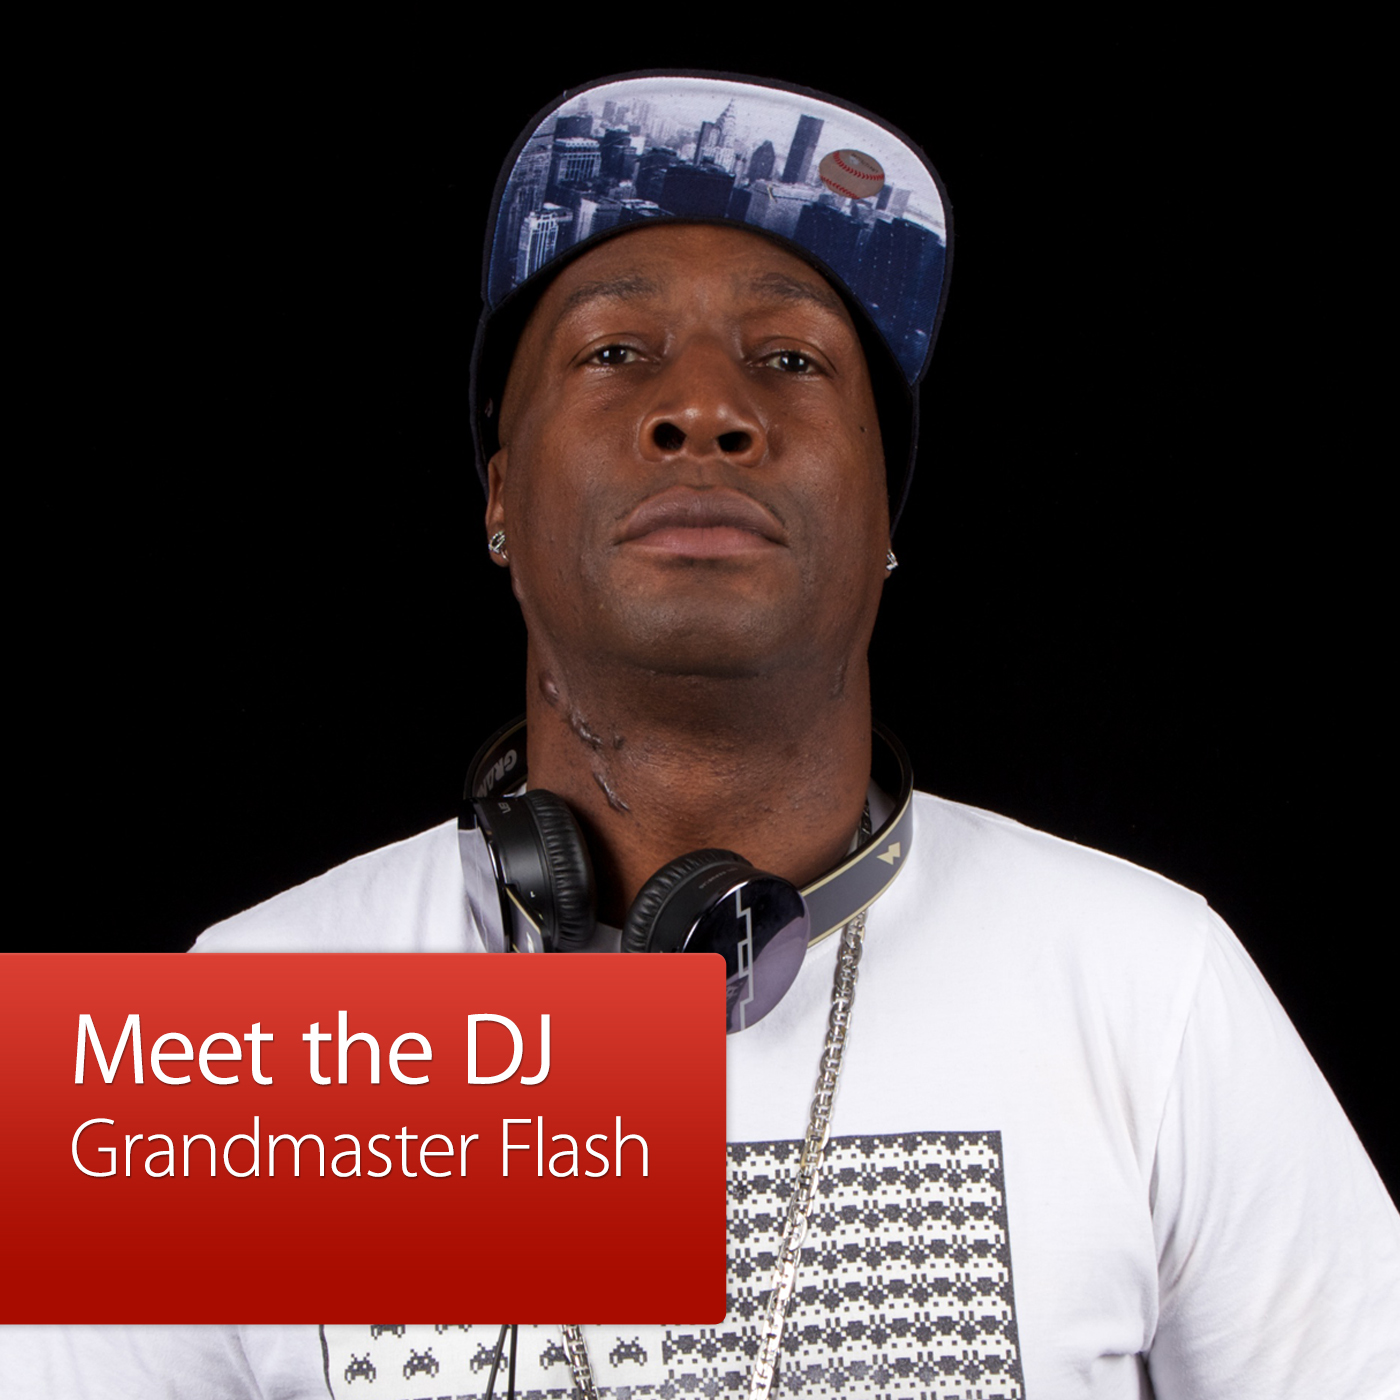 Grandmaster Flash: Meet the DJ